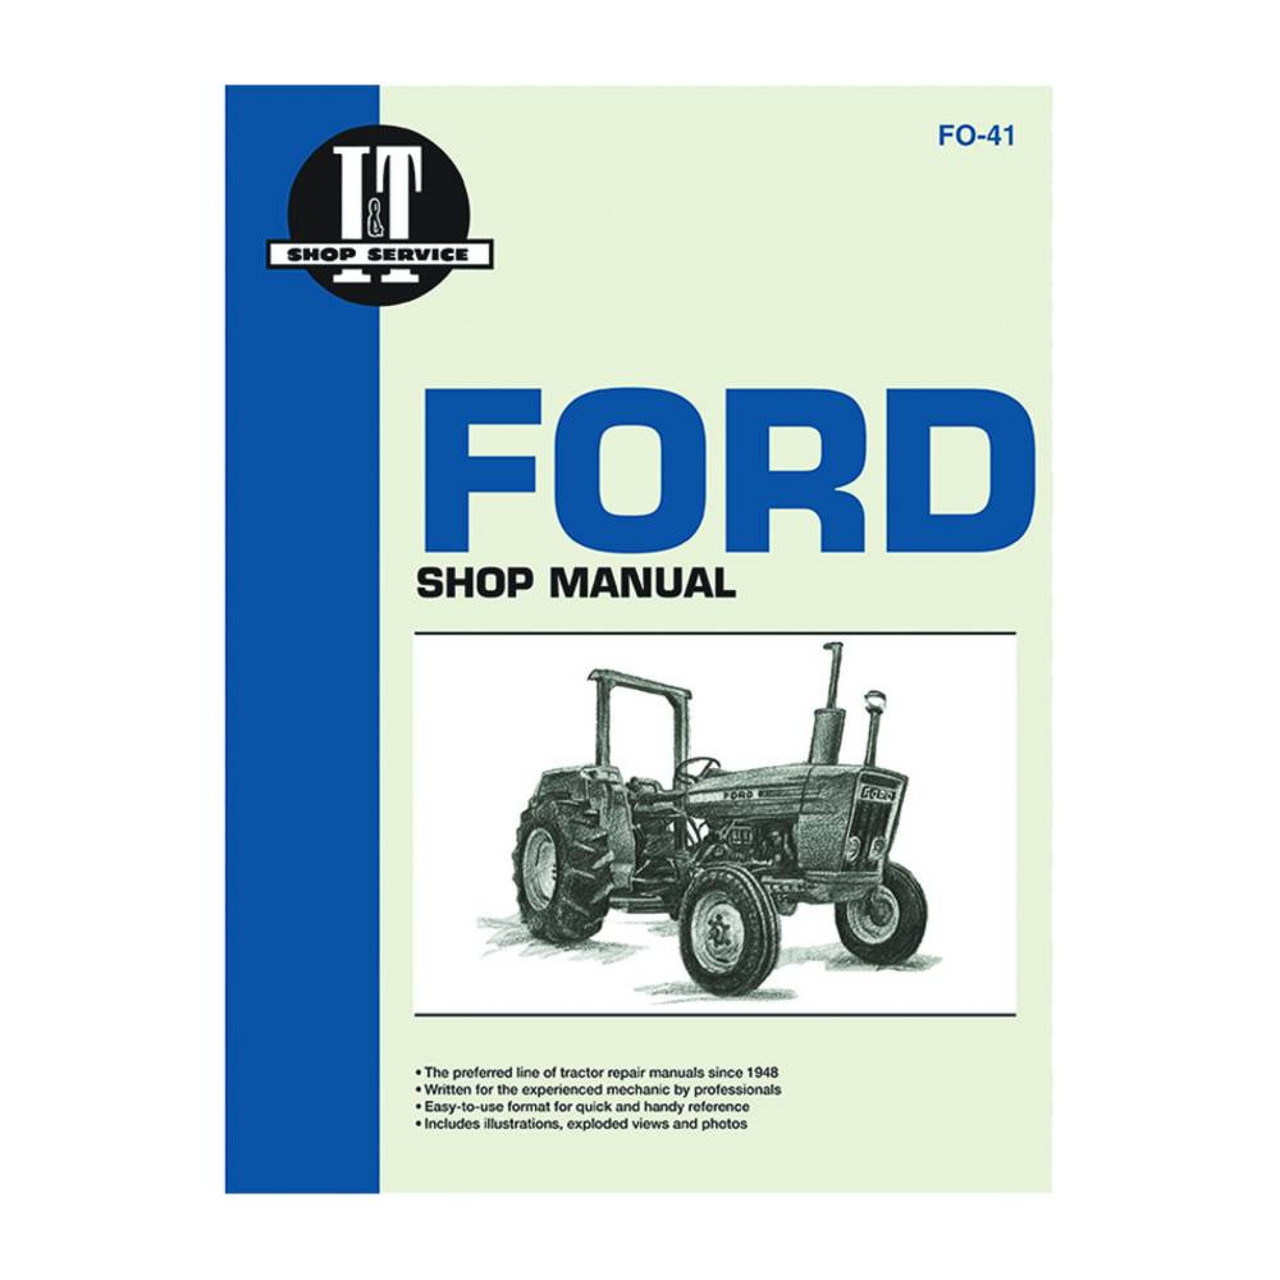 Wiring Harness Ford 4100 Tractor - Wiring Diagram Set on ford tractor instrument panel, ford tractor coil wiring, ford tractor shop manuals, ford 2000 tractor, ford tractor transfer case, ford tractor fan, ford tractor front end parts, ford tractor grille, mercedes benz wiring harness, ford tractor bracket, ford tractor mirrors, ford tractor ignition wiring, ford tractor intake, ford tractor fuel filter, ford tractor bumpers, ford tractor master cylinder, ford tractor fuse, ford tractor spark plug, ford tractor steering column, ford tractor torque converter,